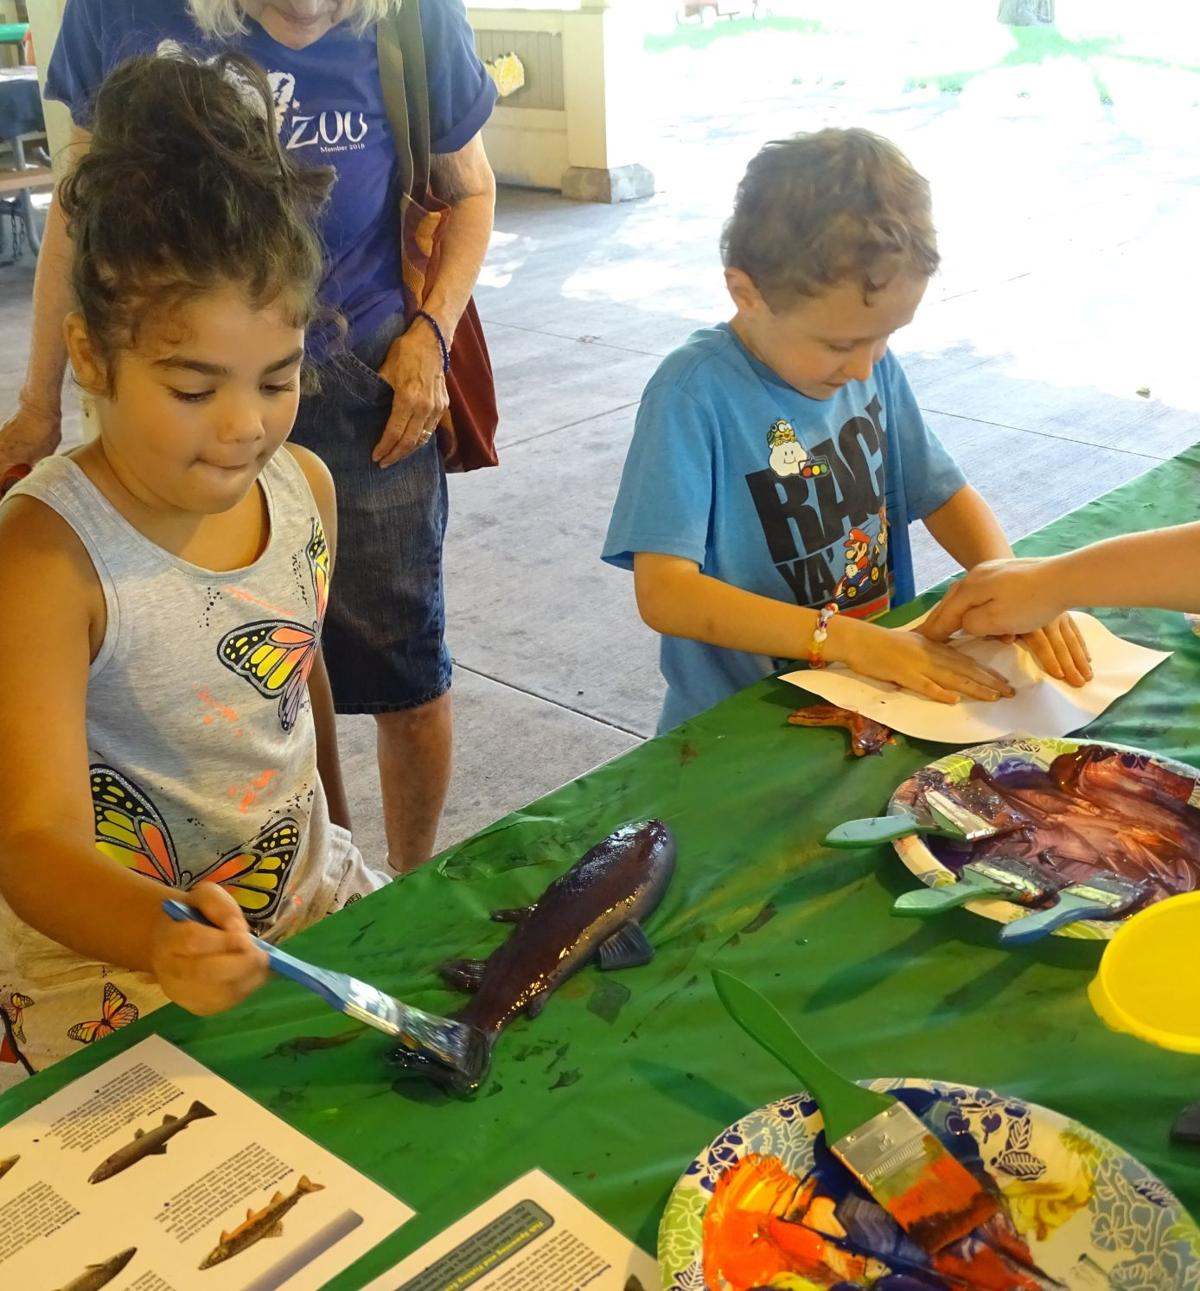 Youth trying Gyotaku fish painting